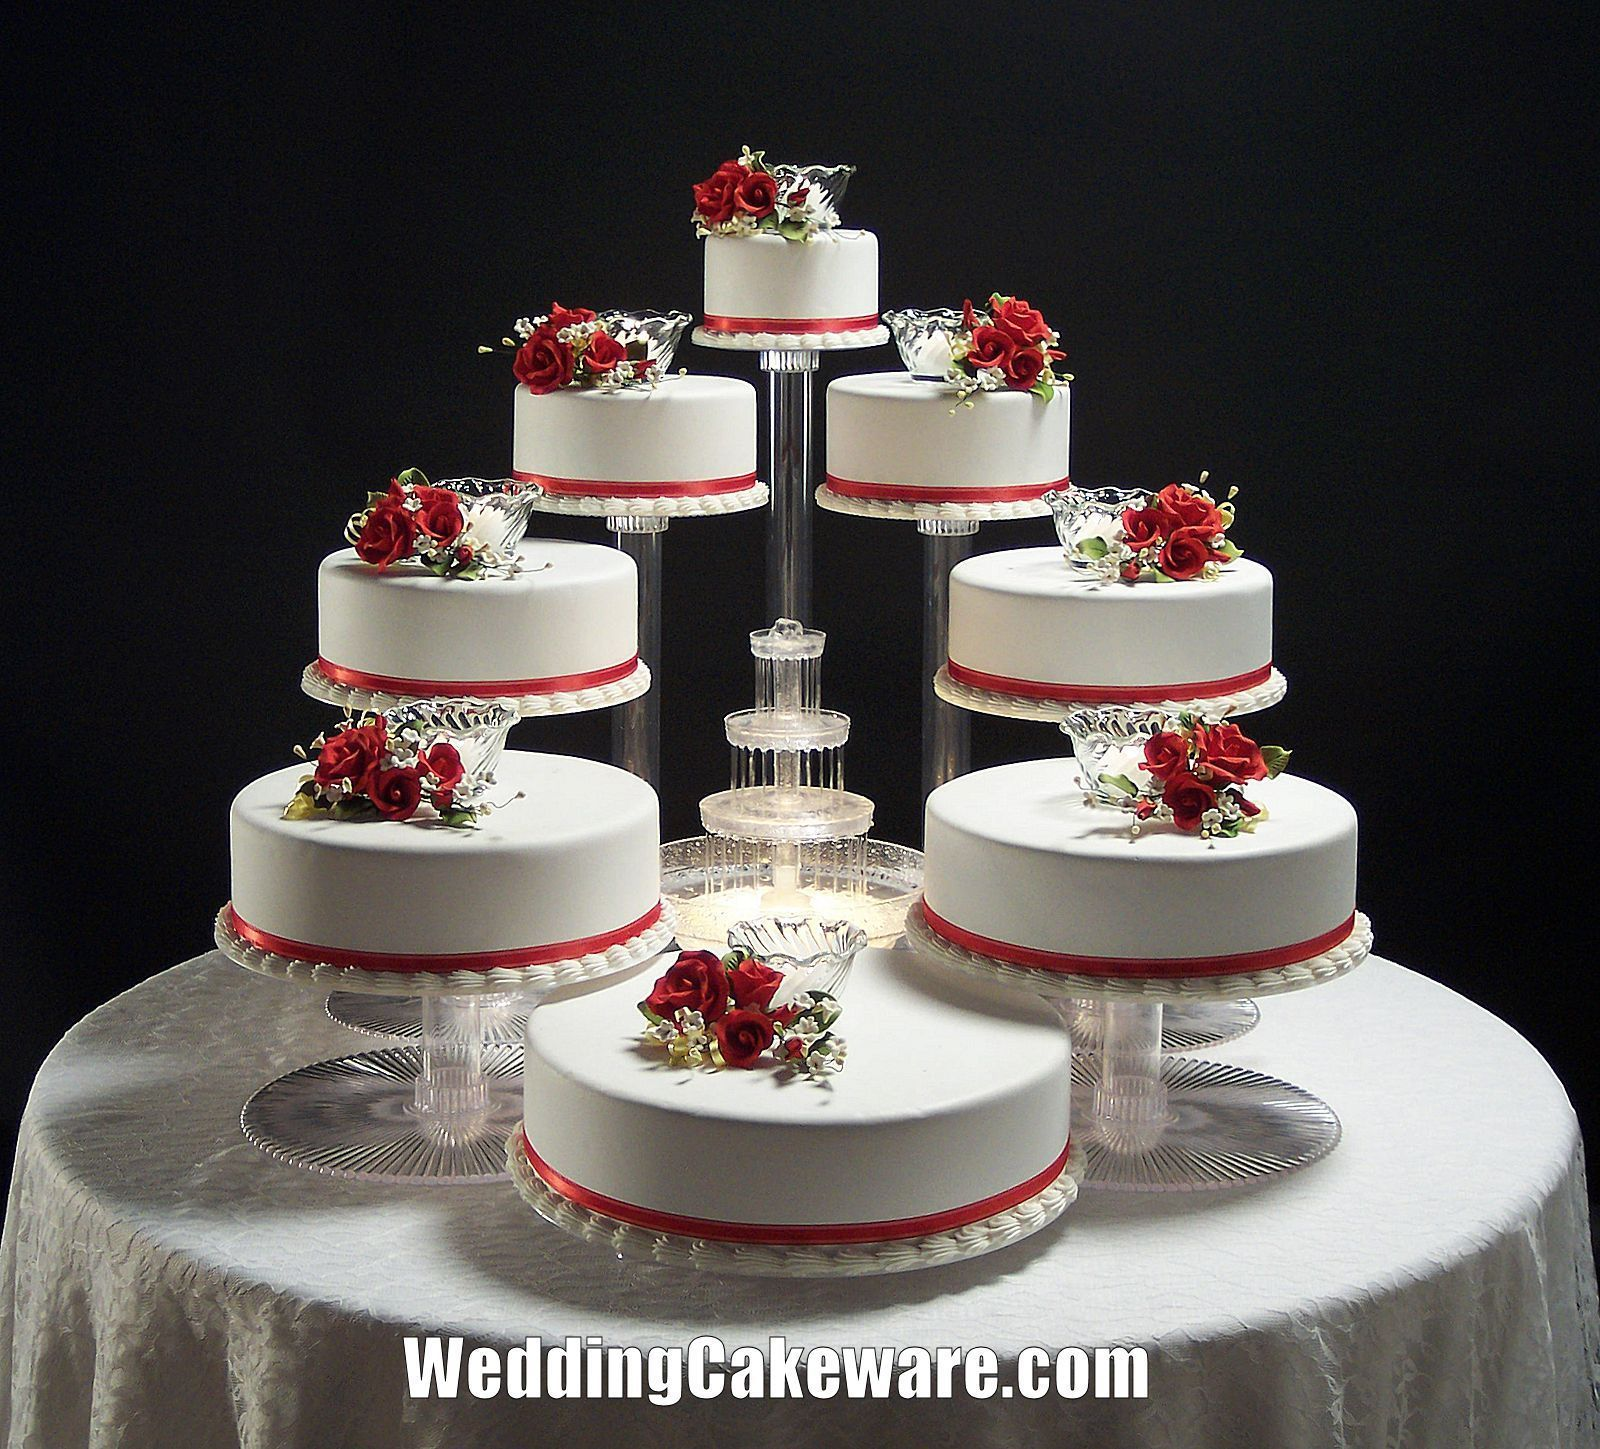 12 Wedding Cakes Tiers Stands Photo